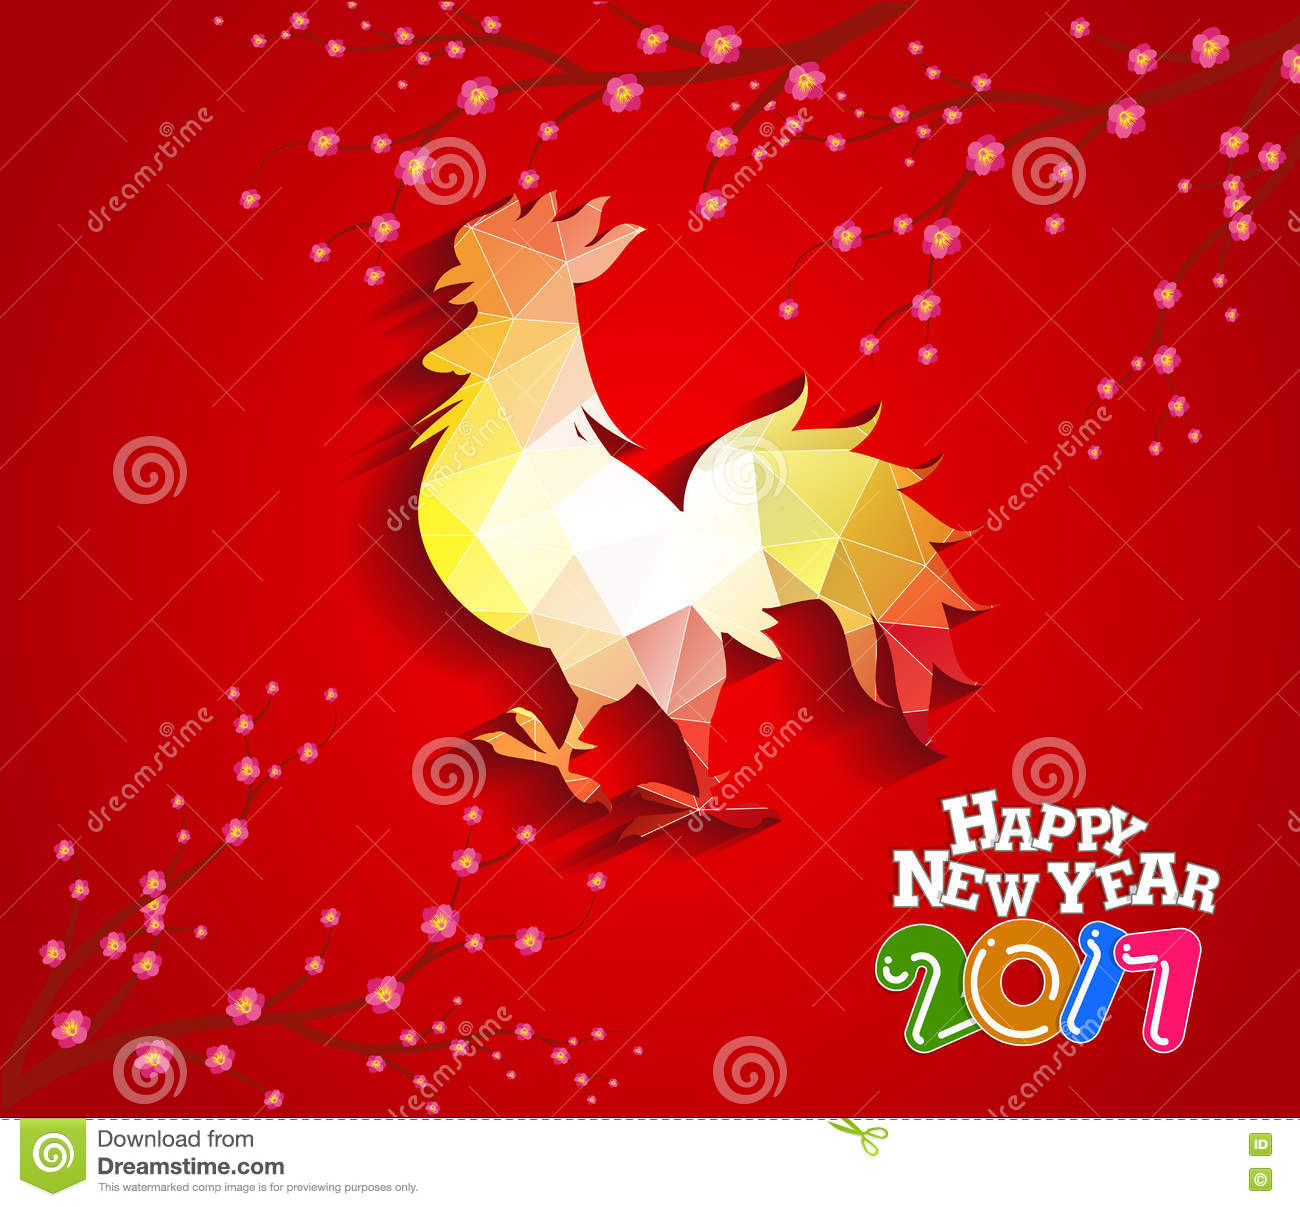 Happy New Year 2017 With The Rooster Design For Lunar New Year Stock